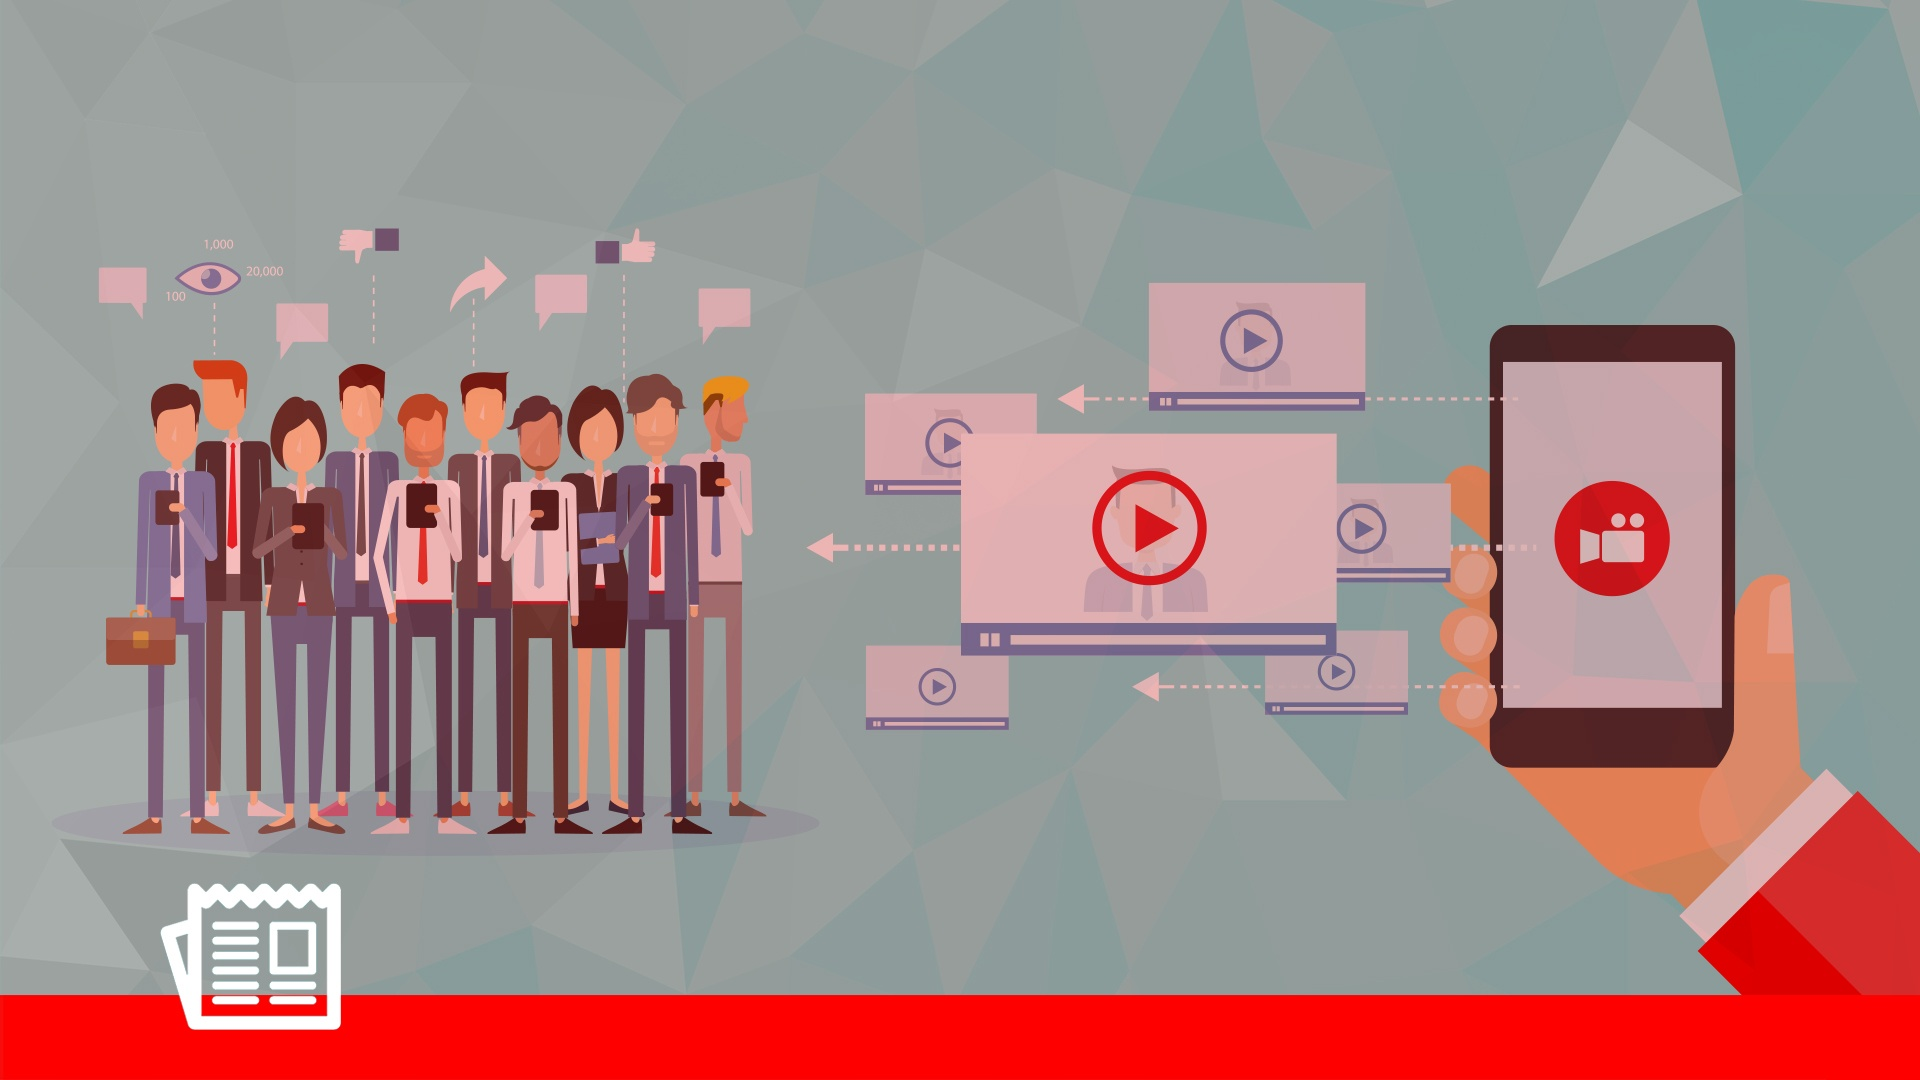 There is a Growing Demand for Video Content – How Can Marketers Capitalize